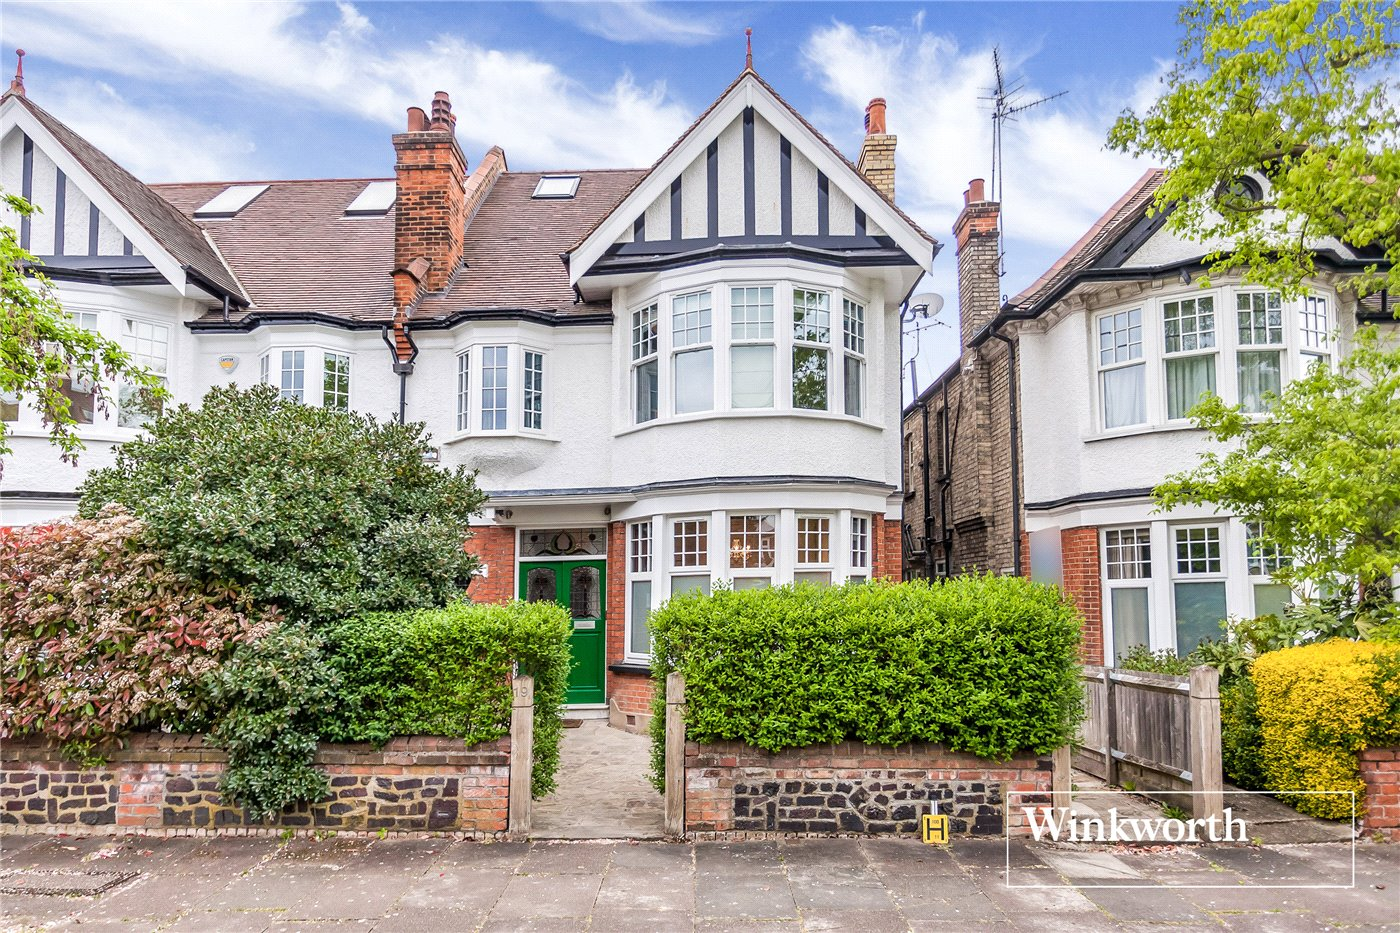 2 Bedrooms Flat for sale in Clifton Avenue, Finchley, London, N3